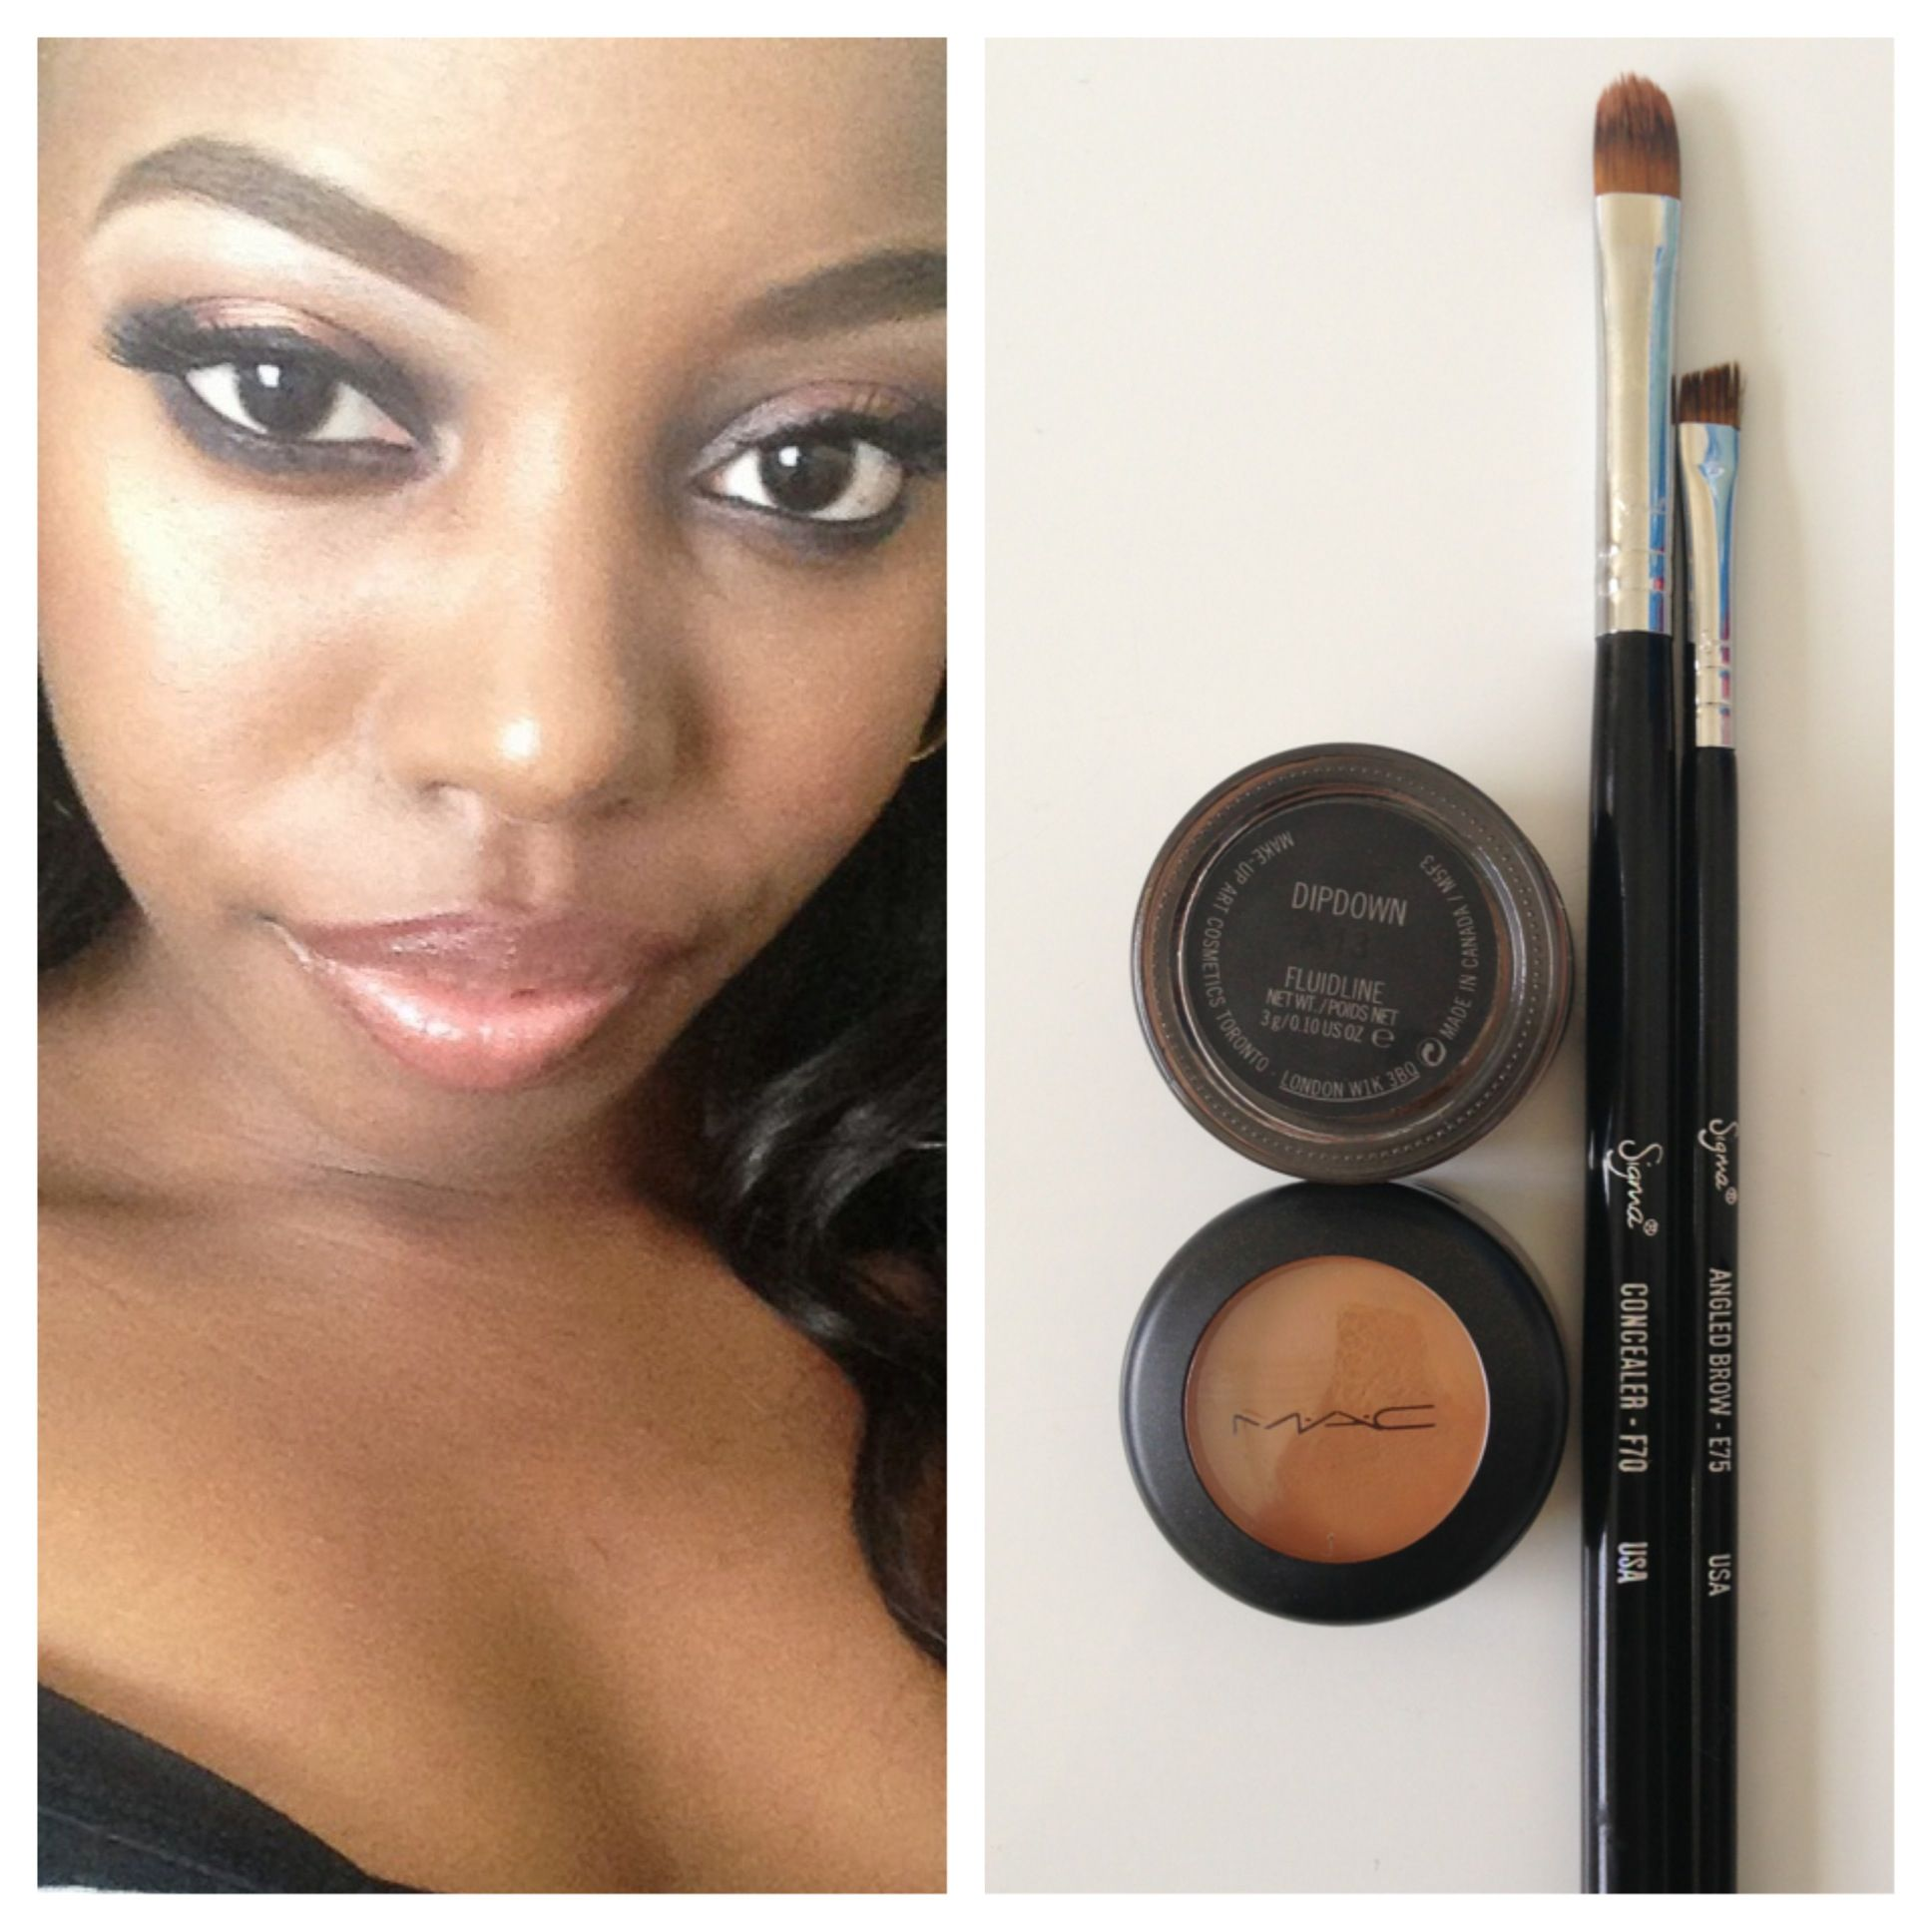 Products I Use For My Eyebrows Mac Studio Finish Concealer Nw40 Mac Fluidline In Dipdown Brushes Are Concealer Brush Mac Studio Finish Concealer Brow Brush